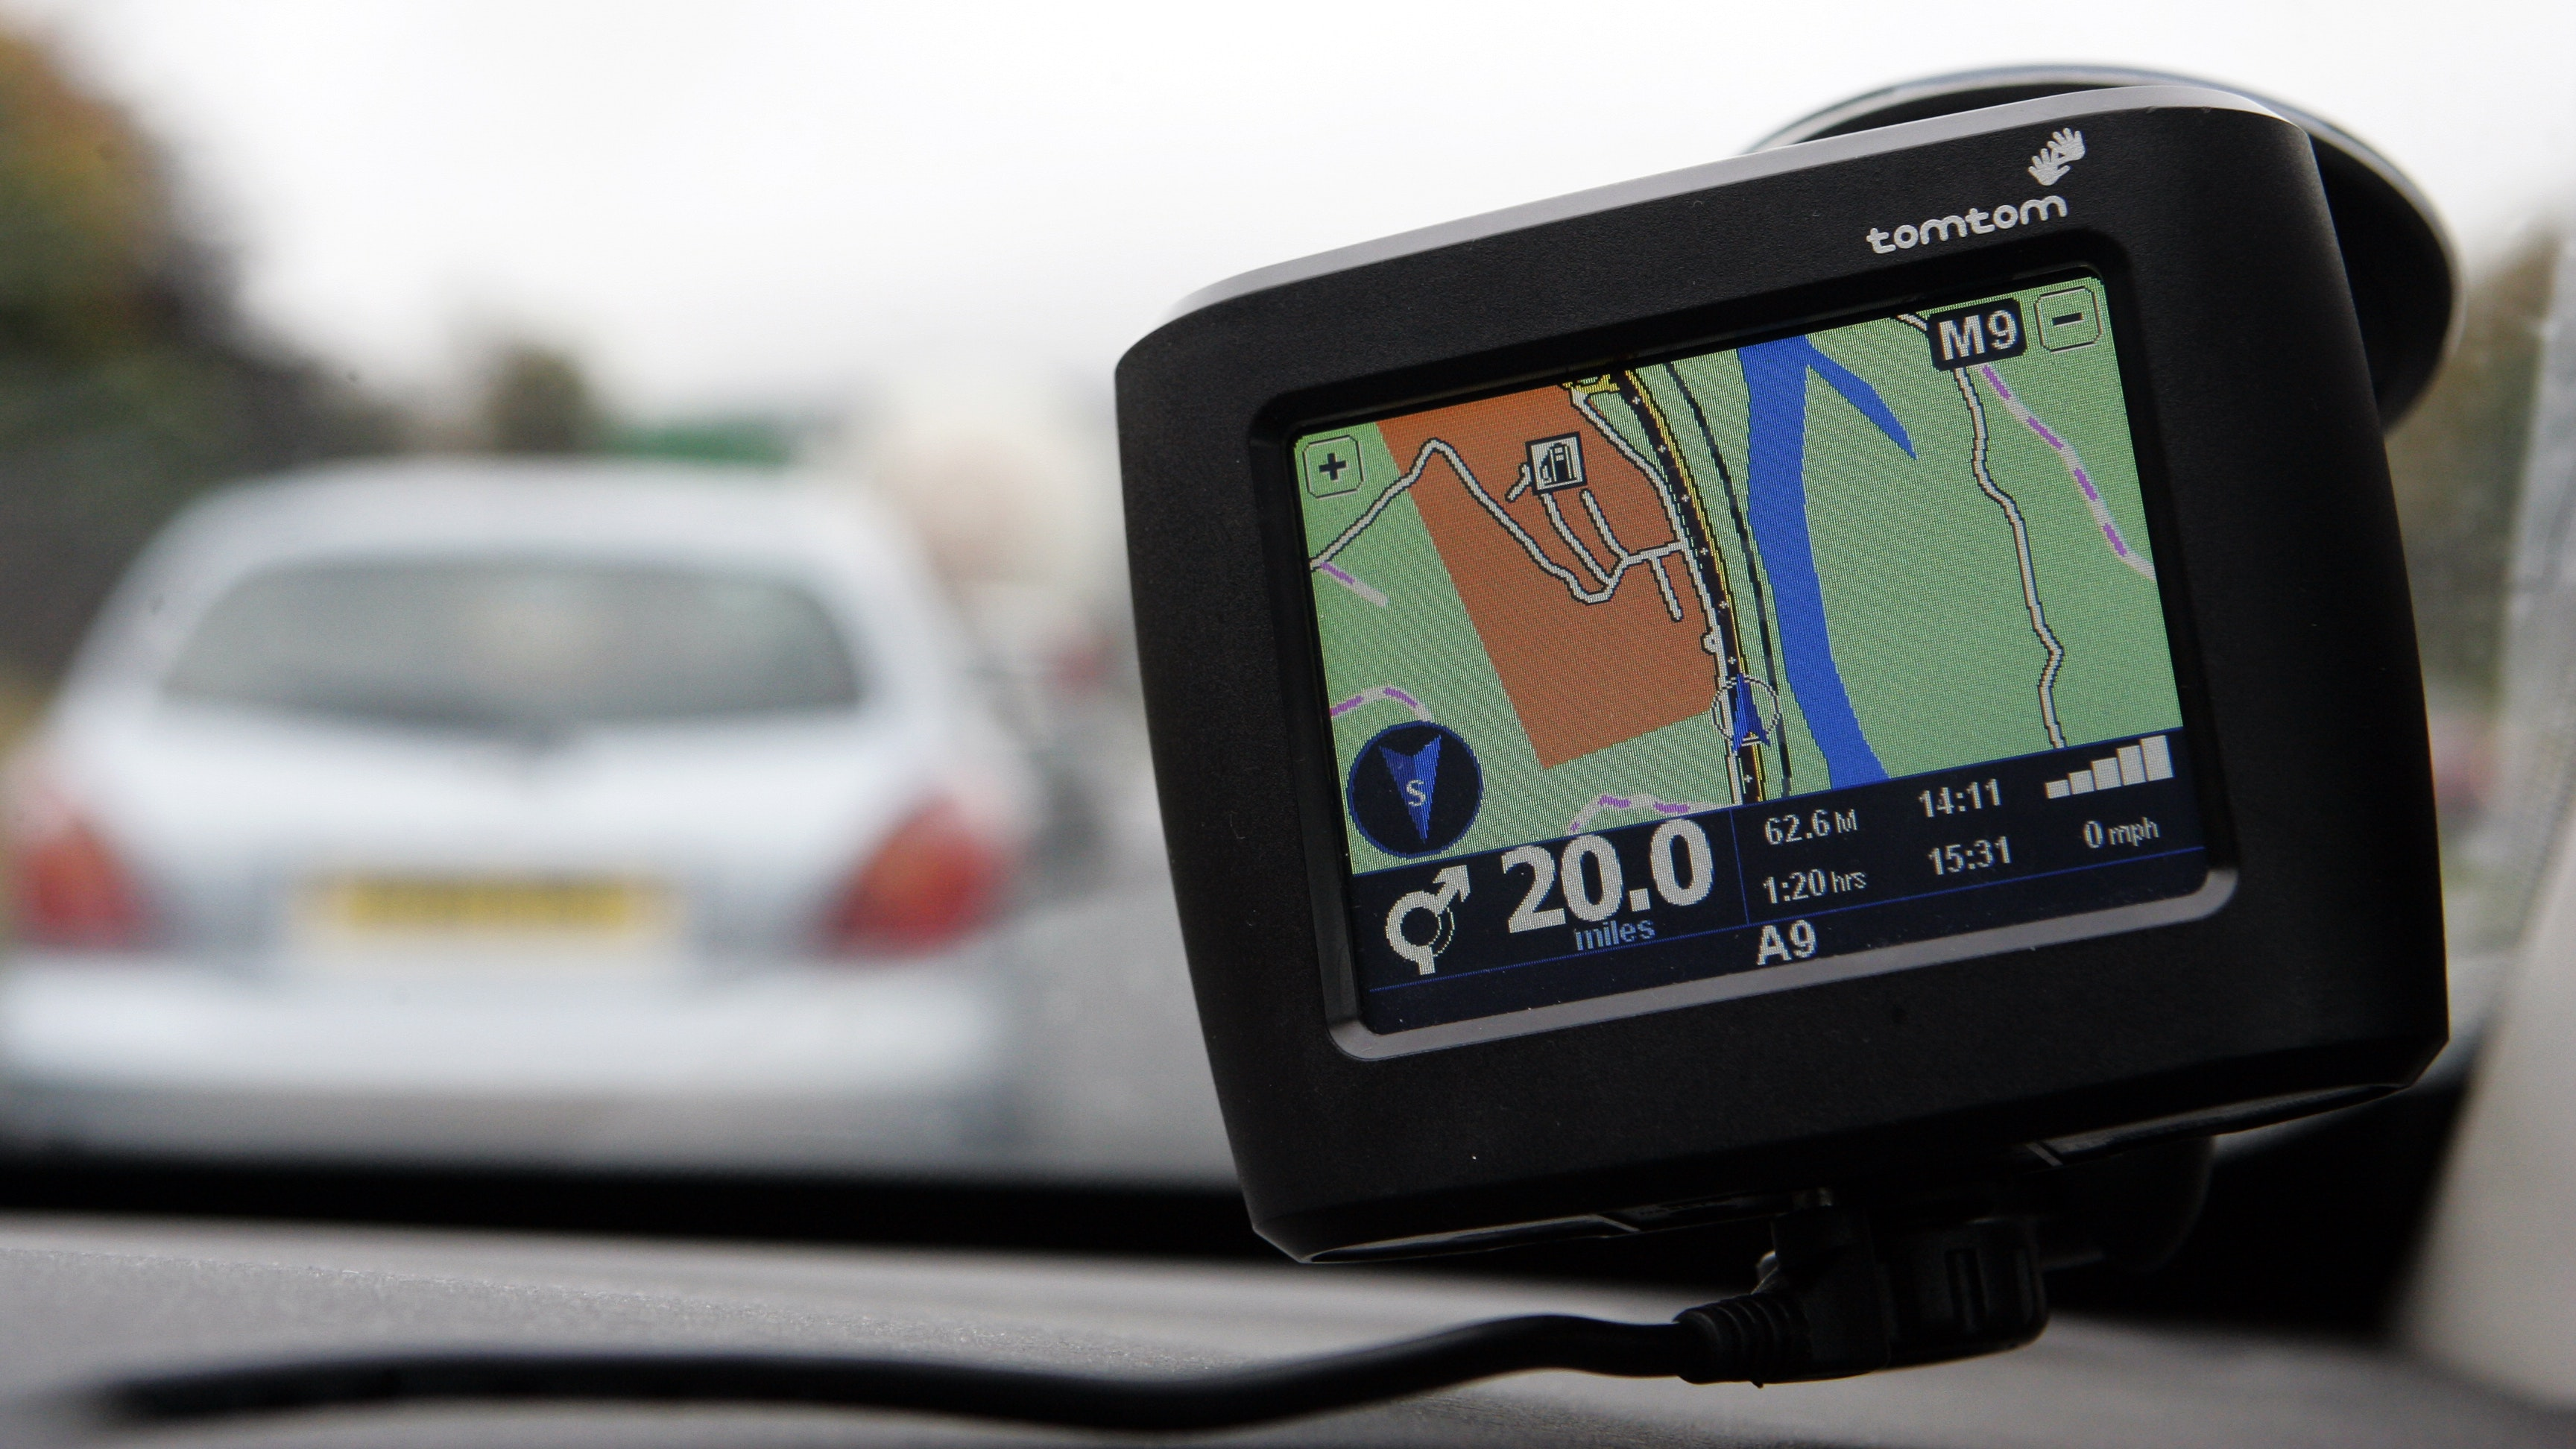 TomTom withdraws 'lifetime' maps for certain sat nav models